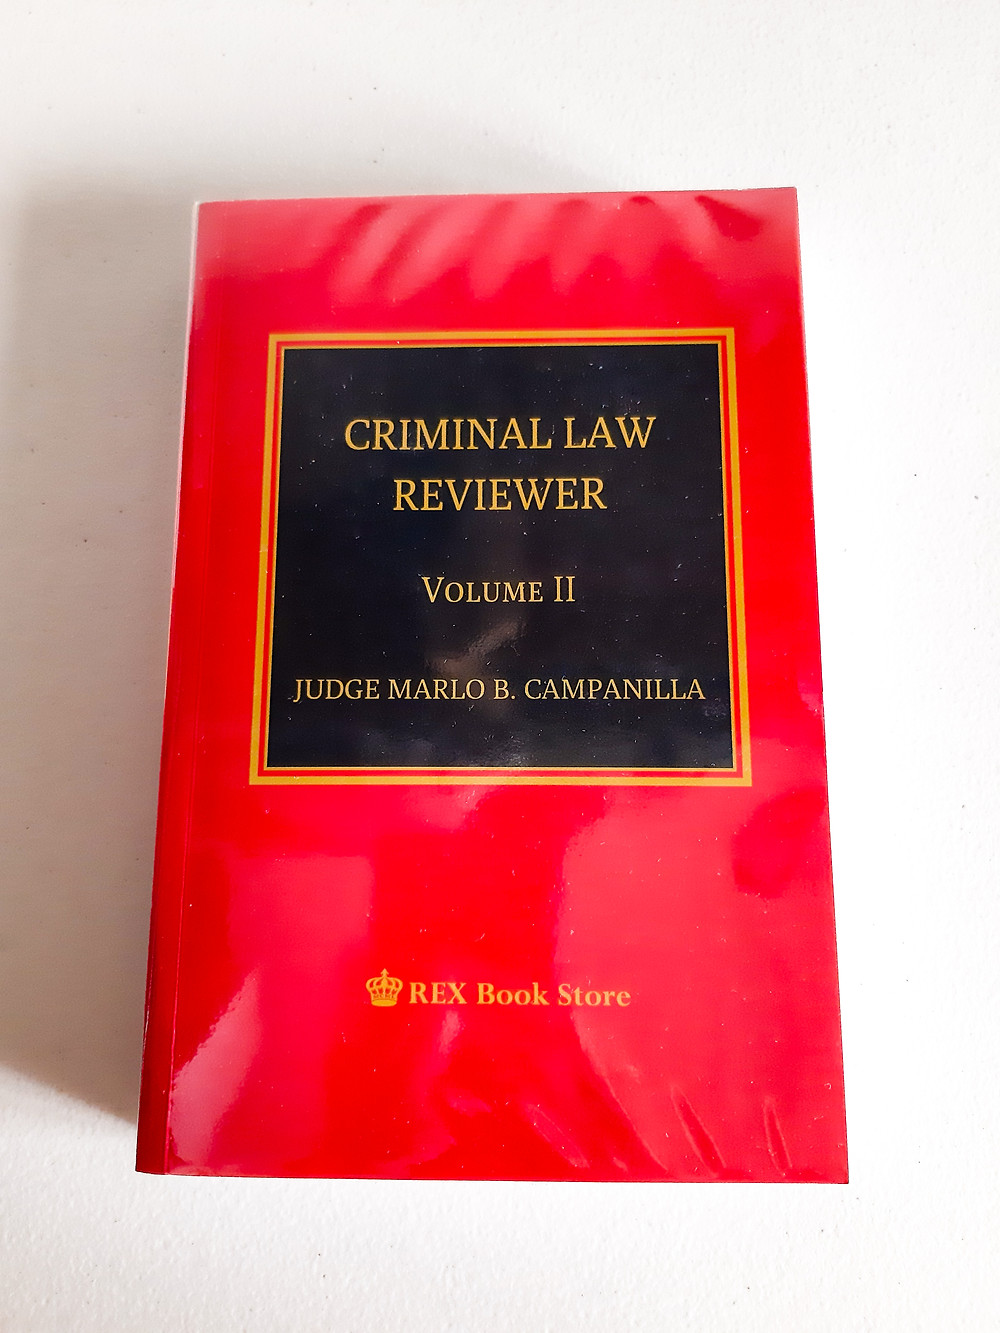 Criminal Law Reviewer Volume 2 by Judge Campanilla